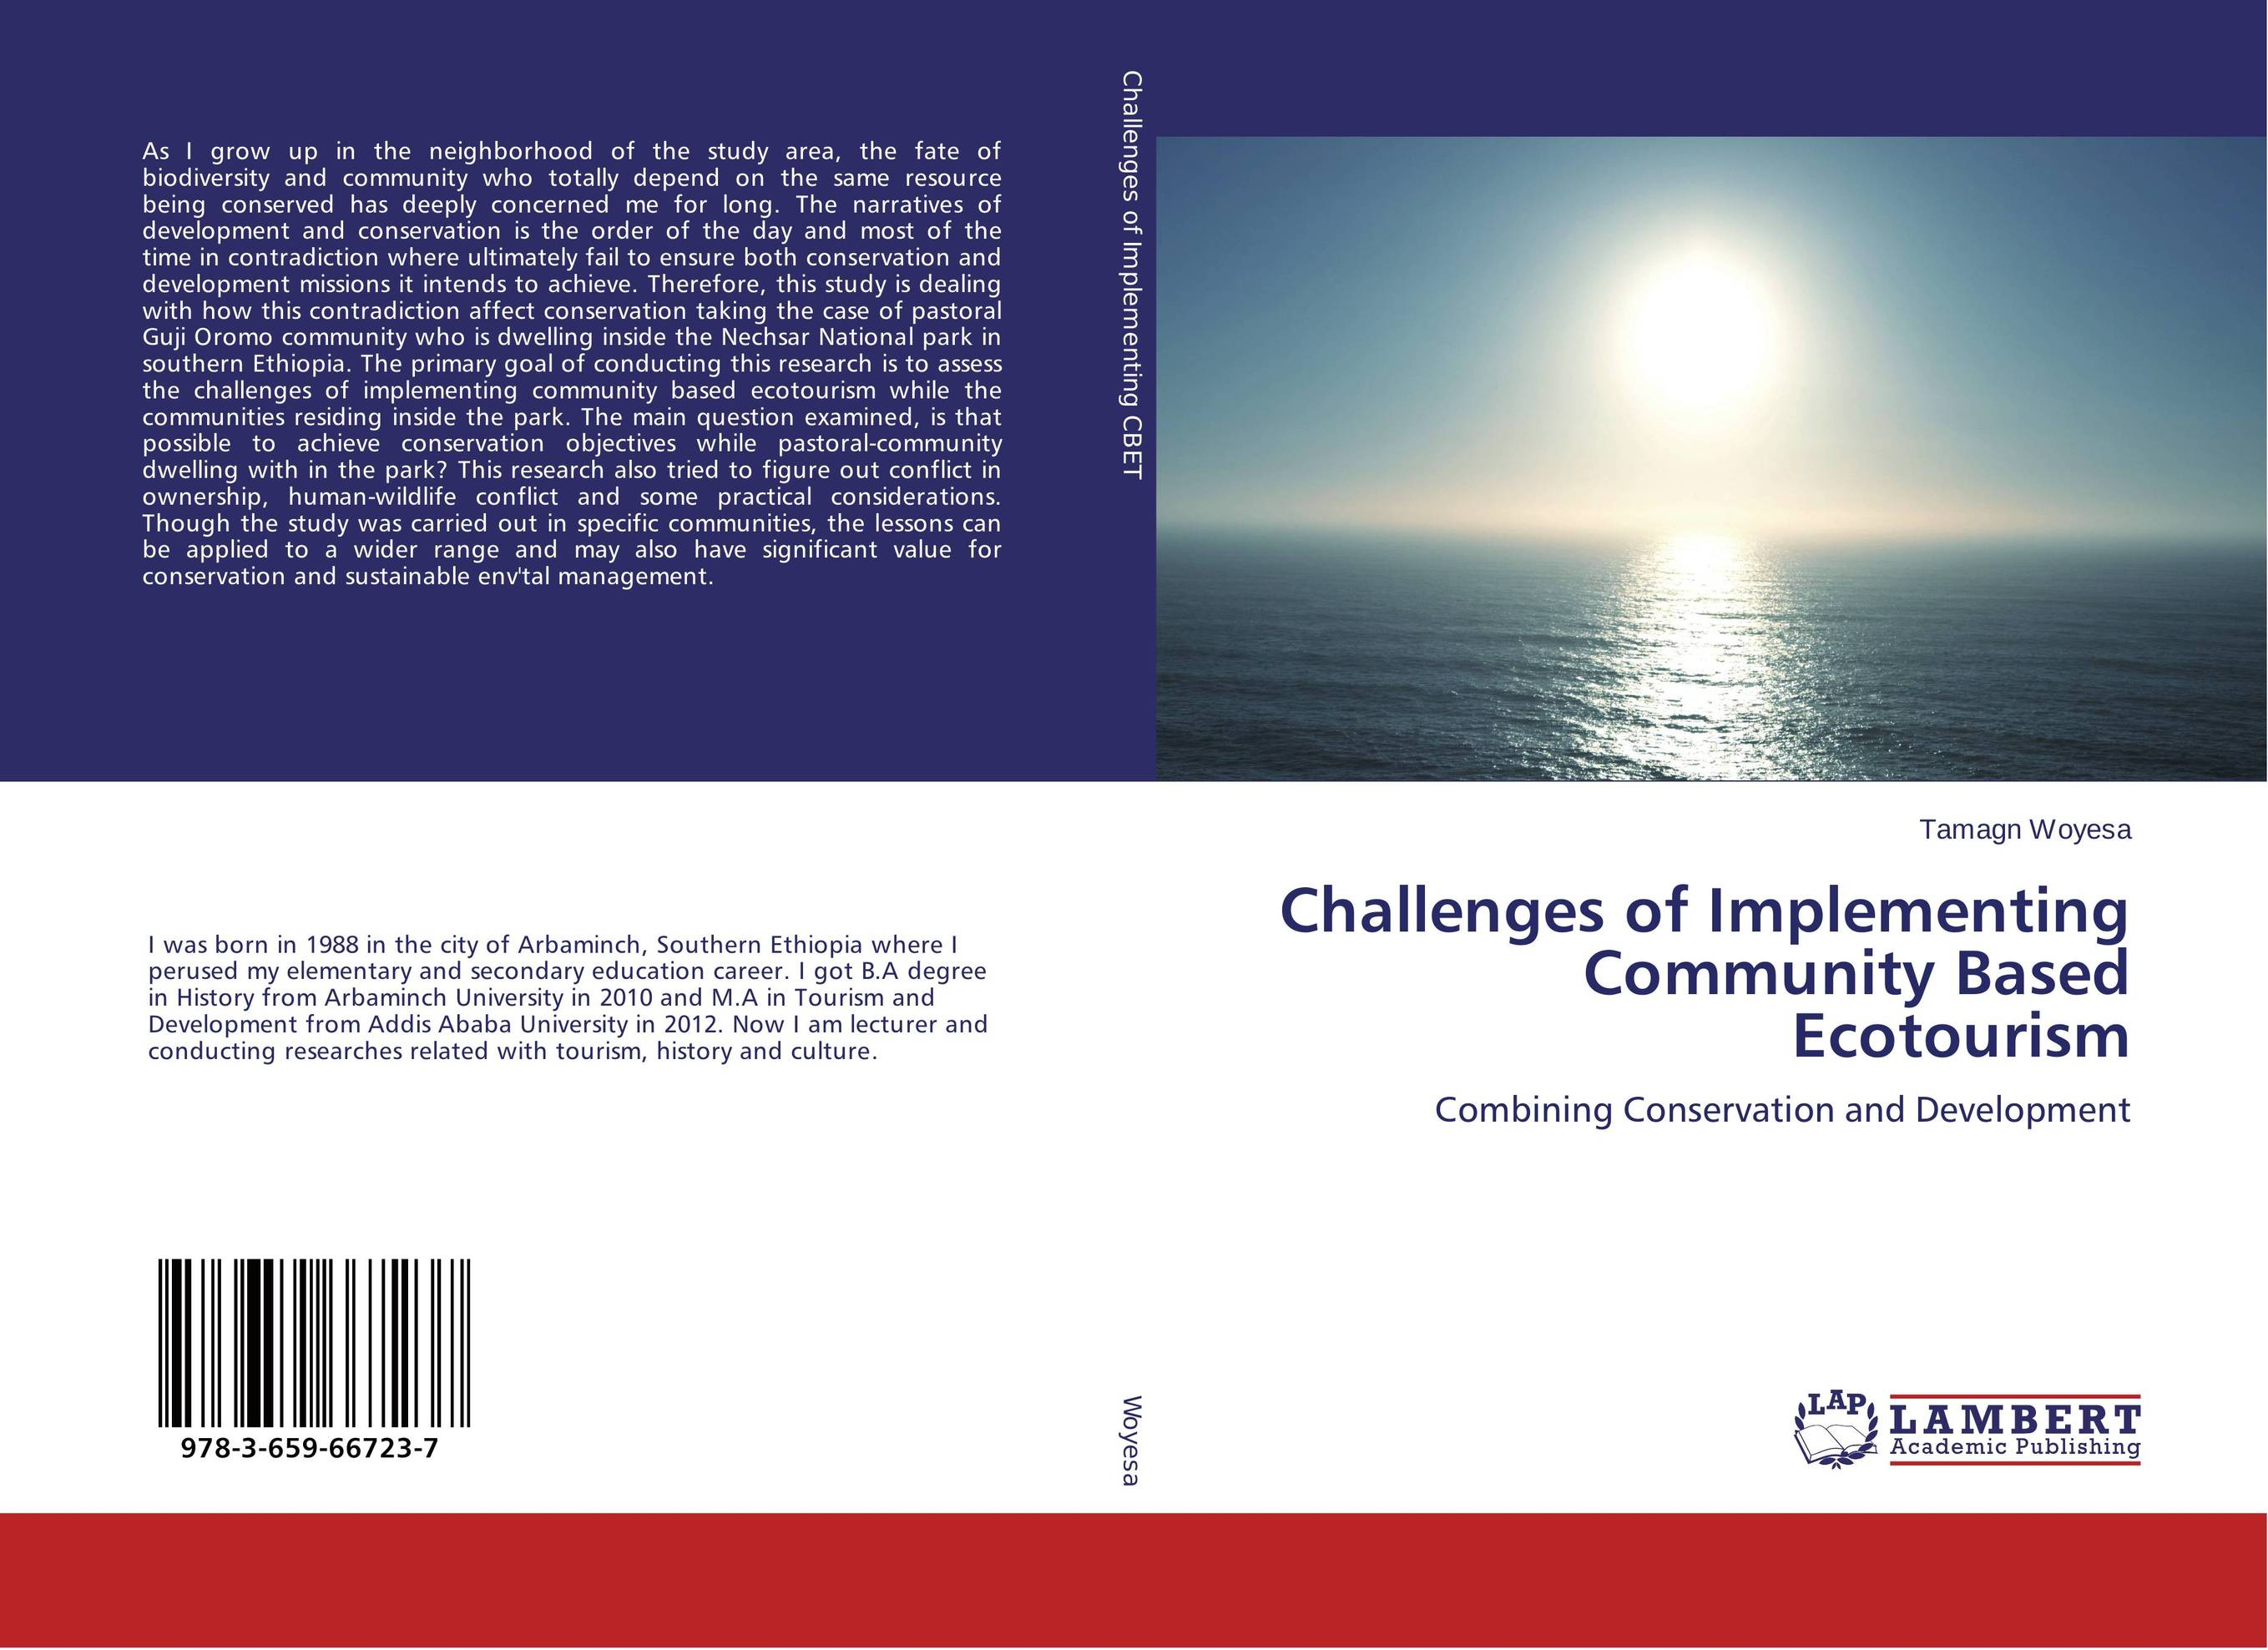 все цены на Challenges of Implementing Community Based Ecotourism онлайн